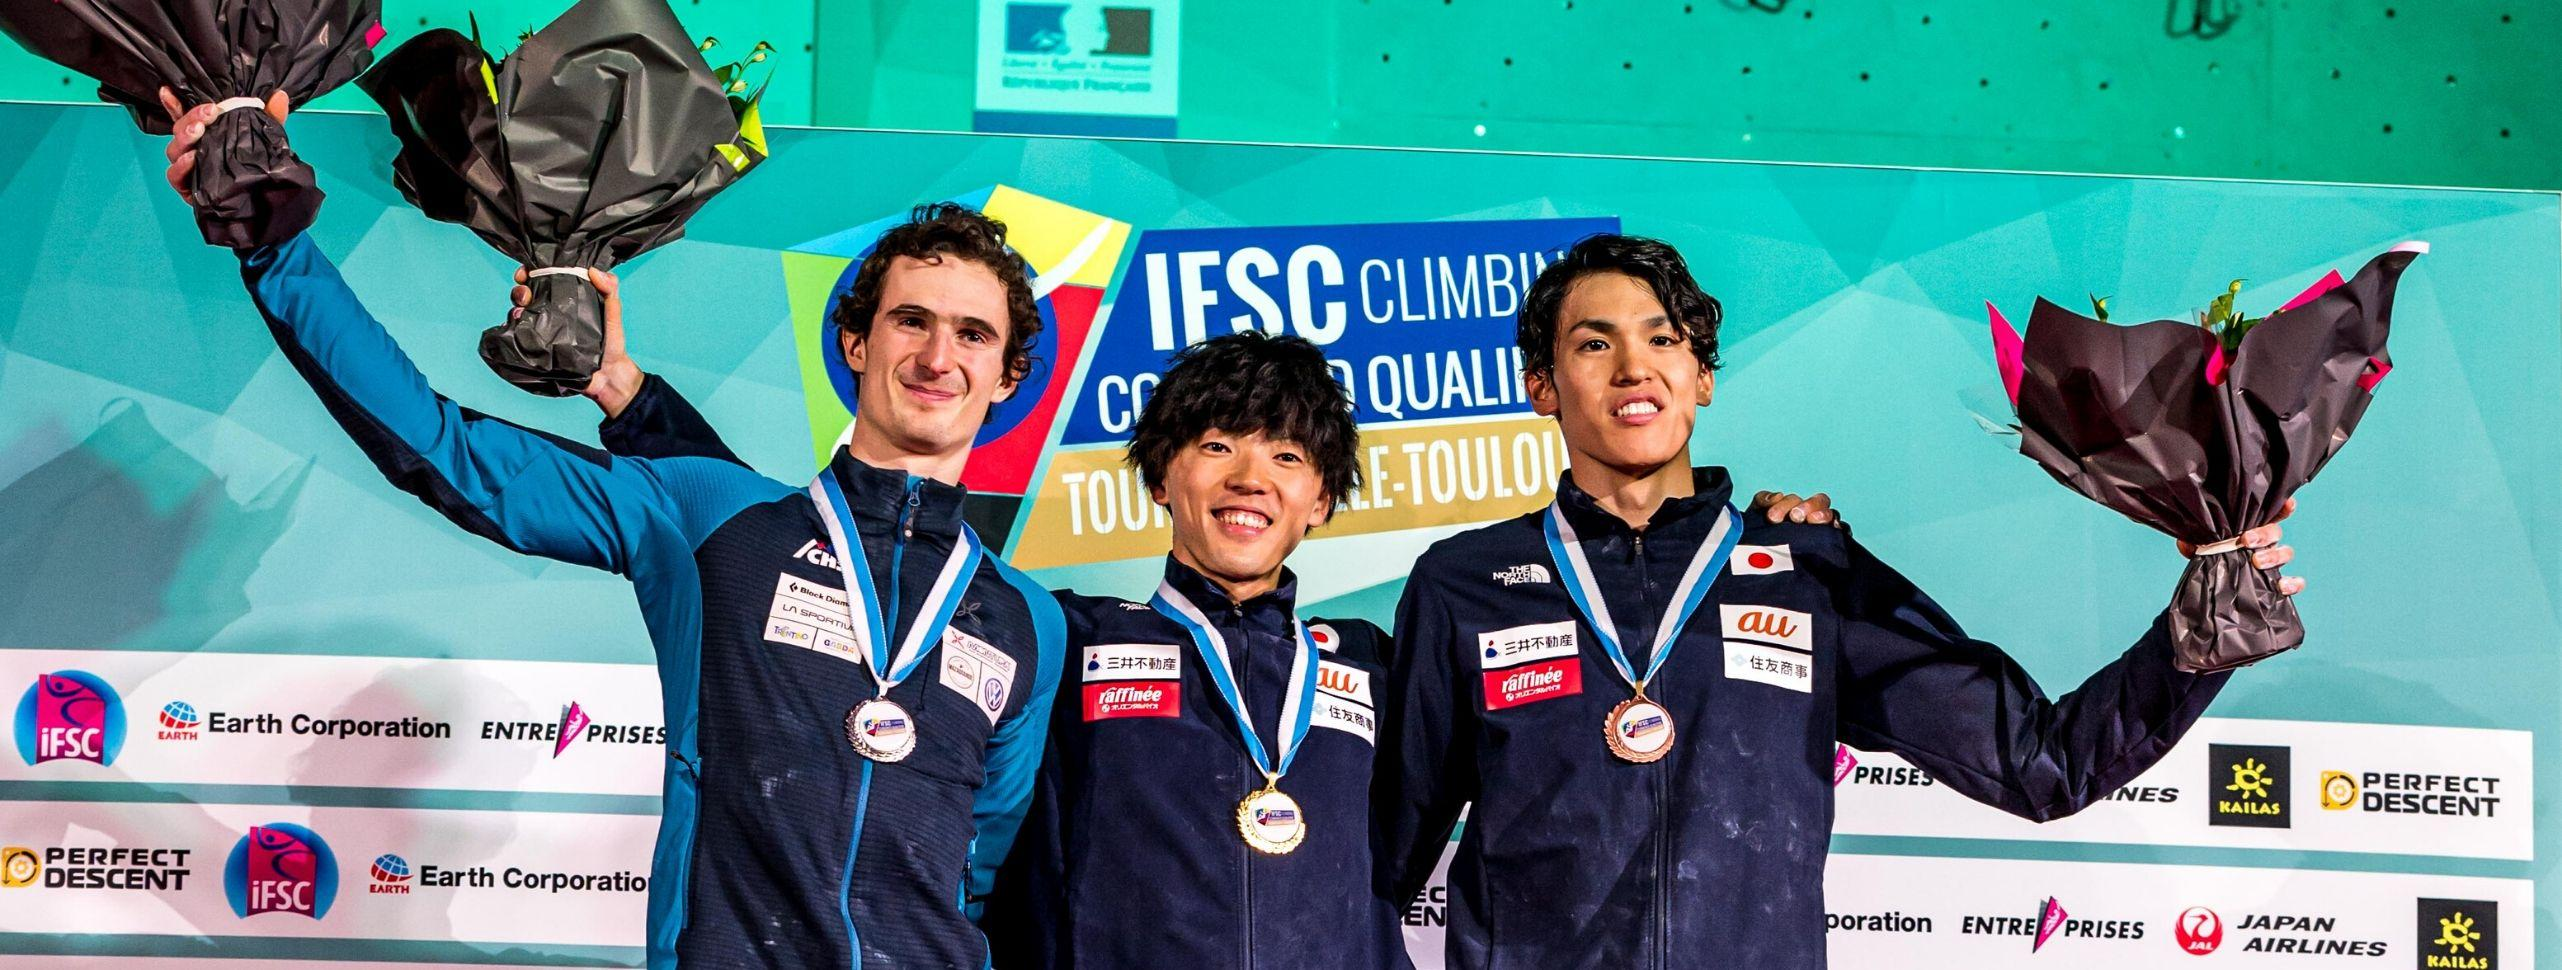 Two Medals for Japan and Six New Olympians